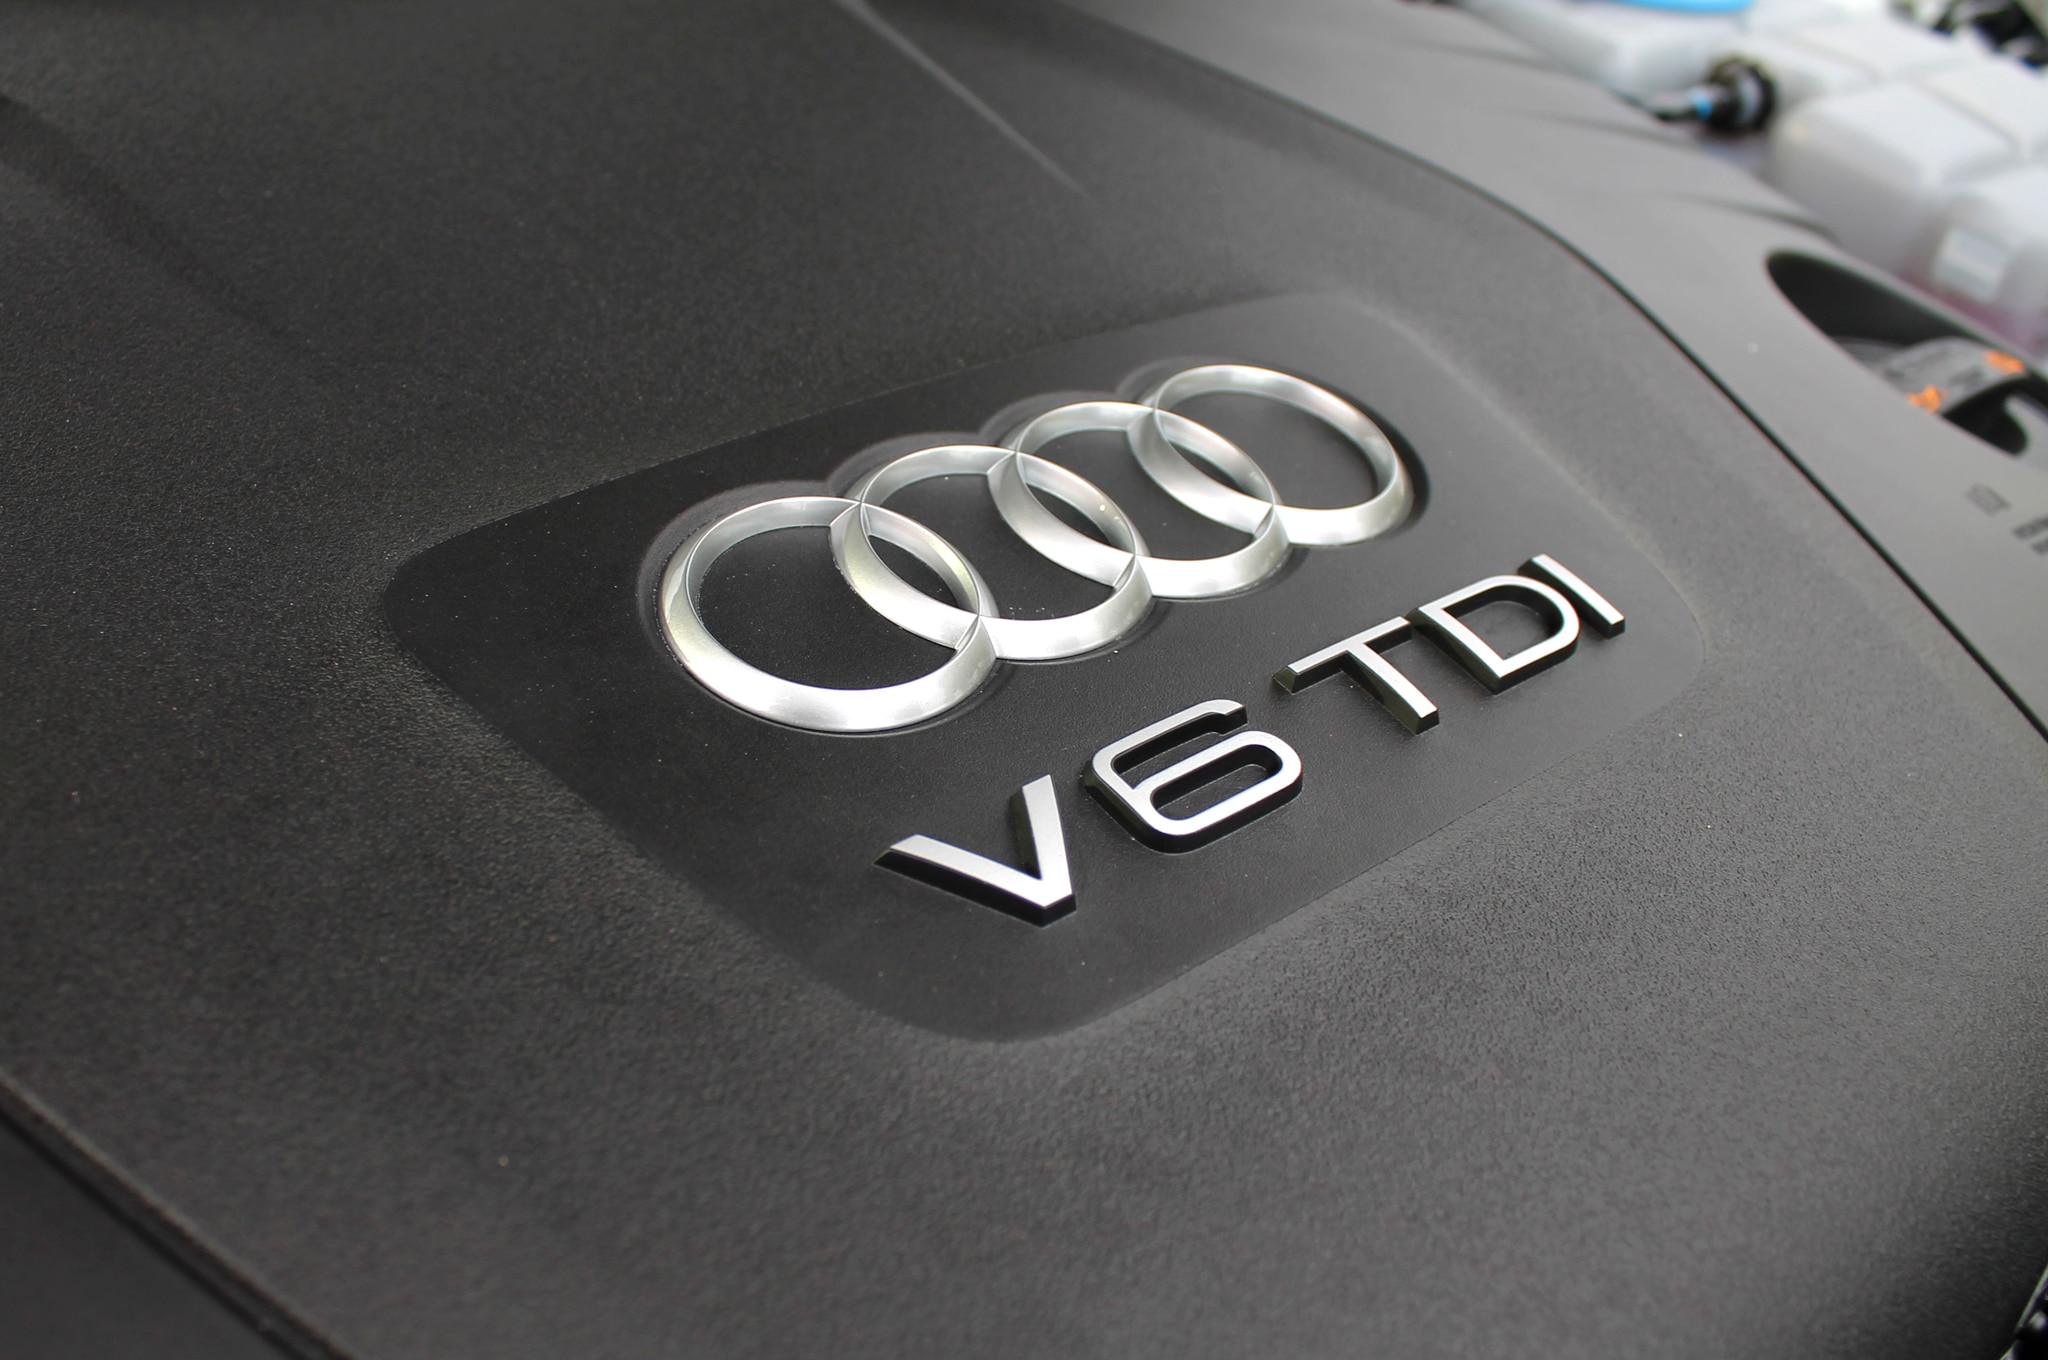 2014 Audi A6 TDI Engine Cover